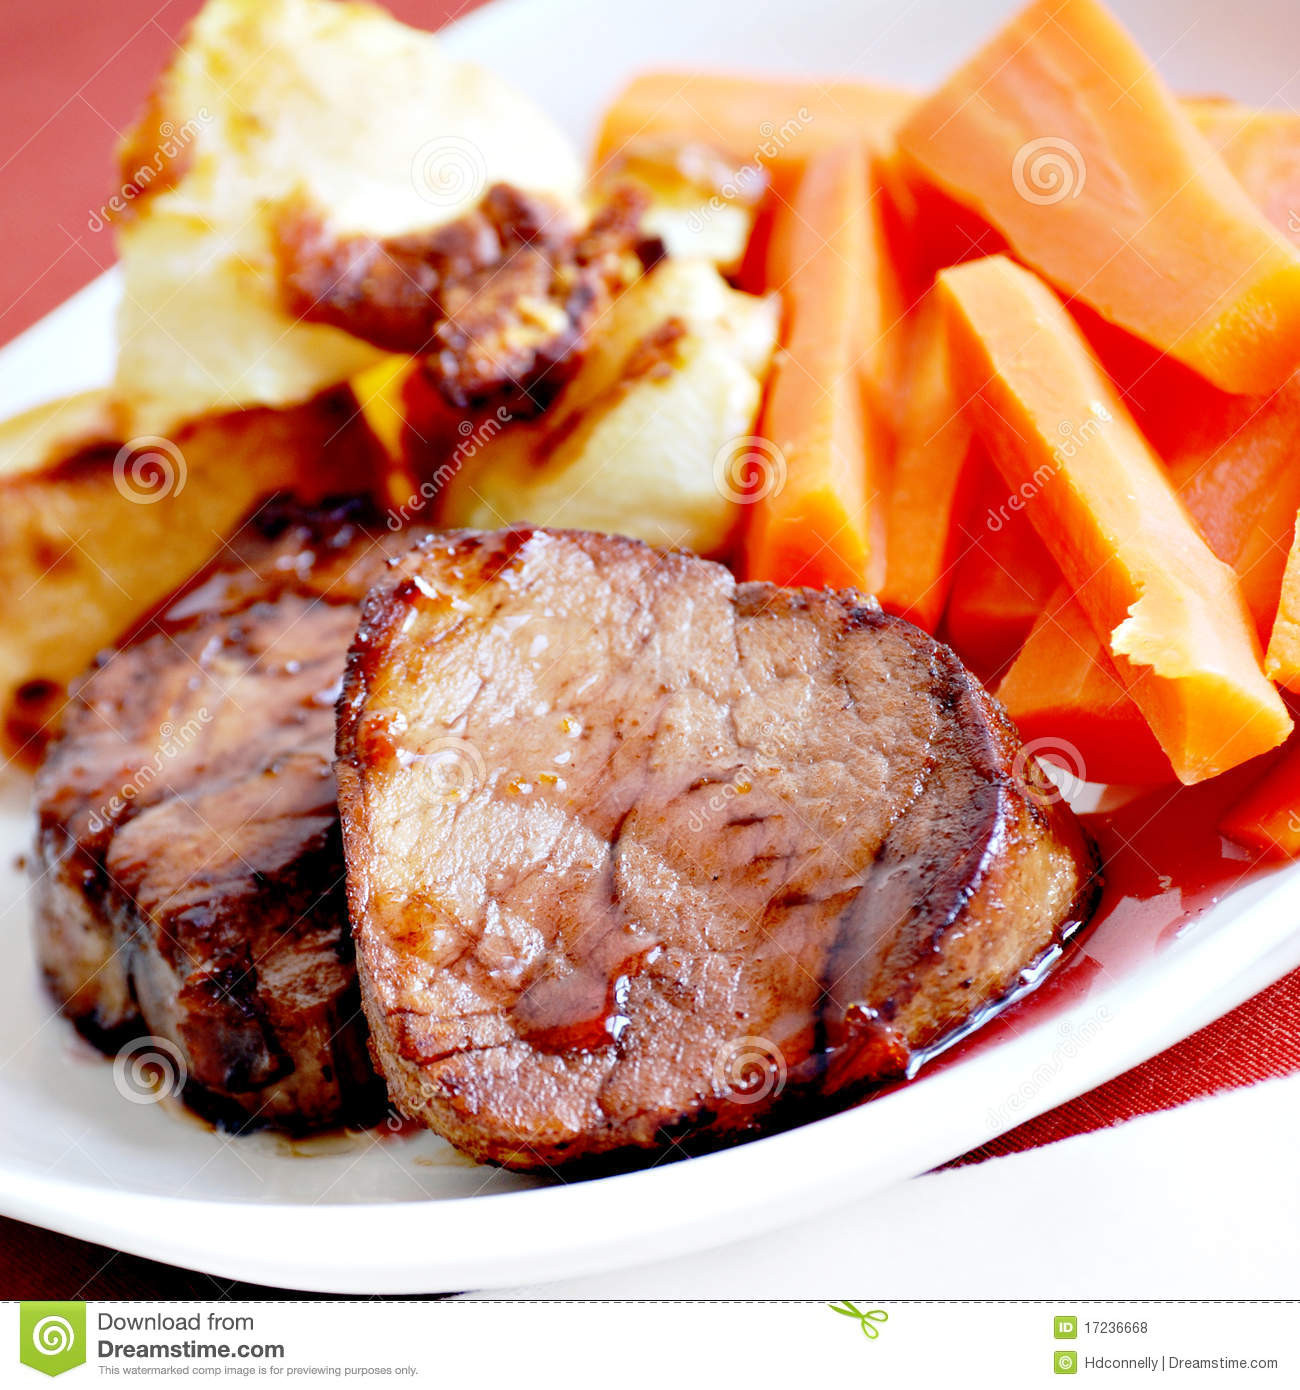 Pork Tenderloin Dinner  Pork Tenderloin Dinner Royalty Free Stock s Image